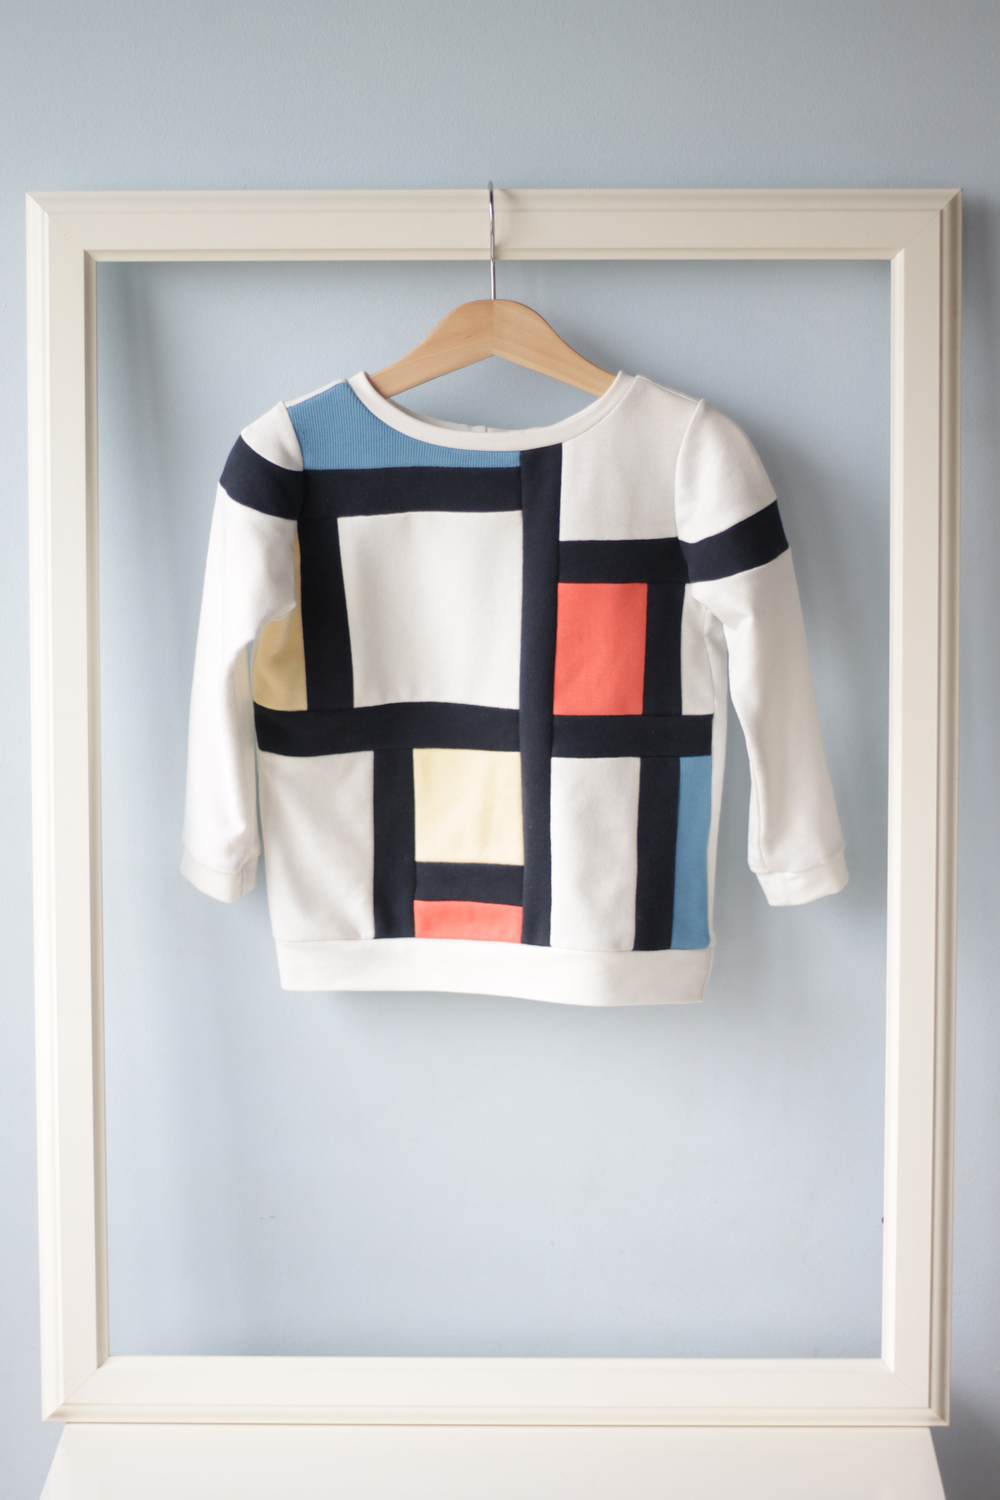 mondrian_sweater22.jpg